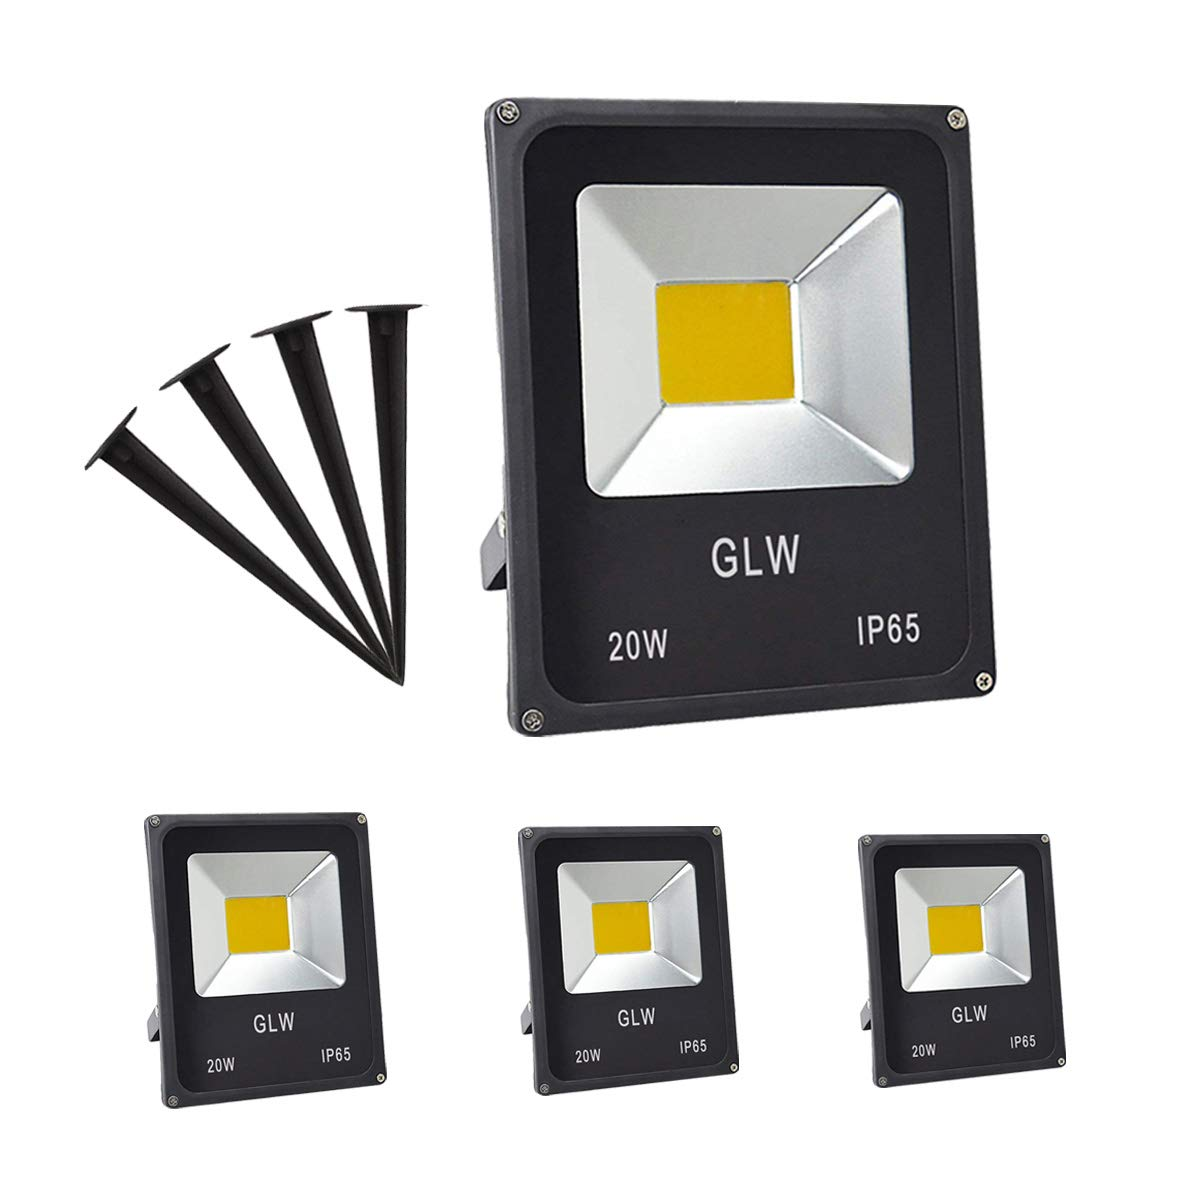 GLW 20W LED Landscape Lights 12V Flood Light Warm White 3000K Low Voltage AC/DC Waterproof Garden Yard Path Lights Walls Trees Flags Outdoor Spotlights with Spike Stand (4 Pack)